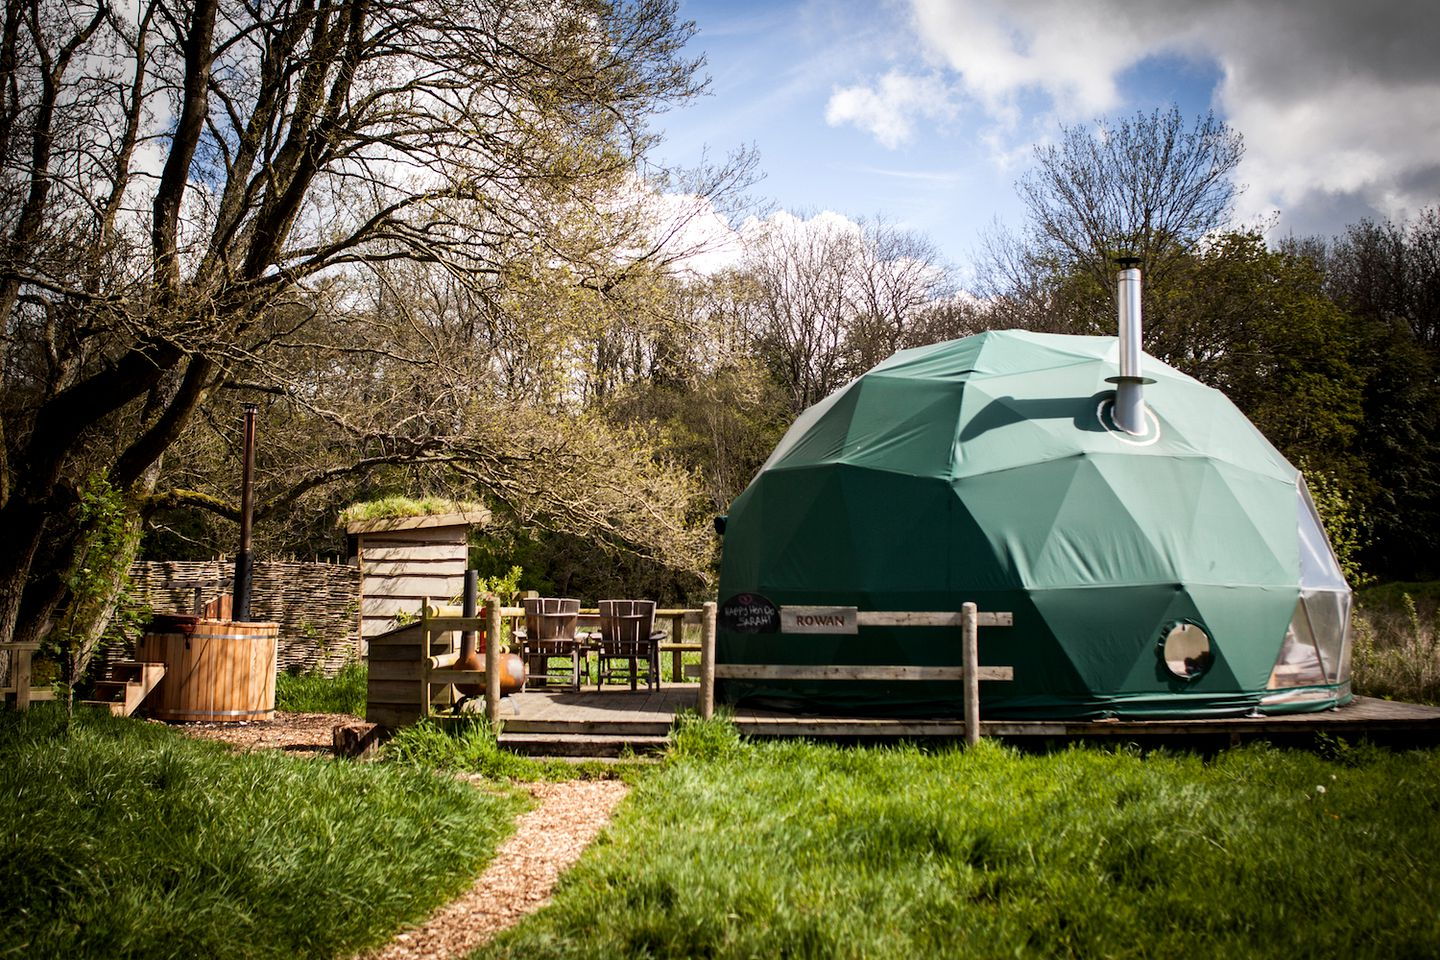 Glamping Brecon Beacons National Park: cozy dome rentals in Wales